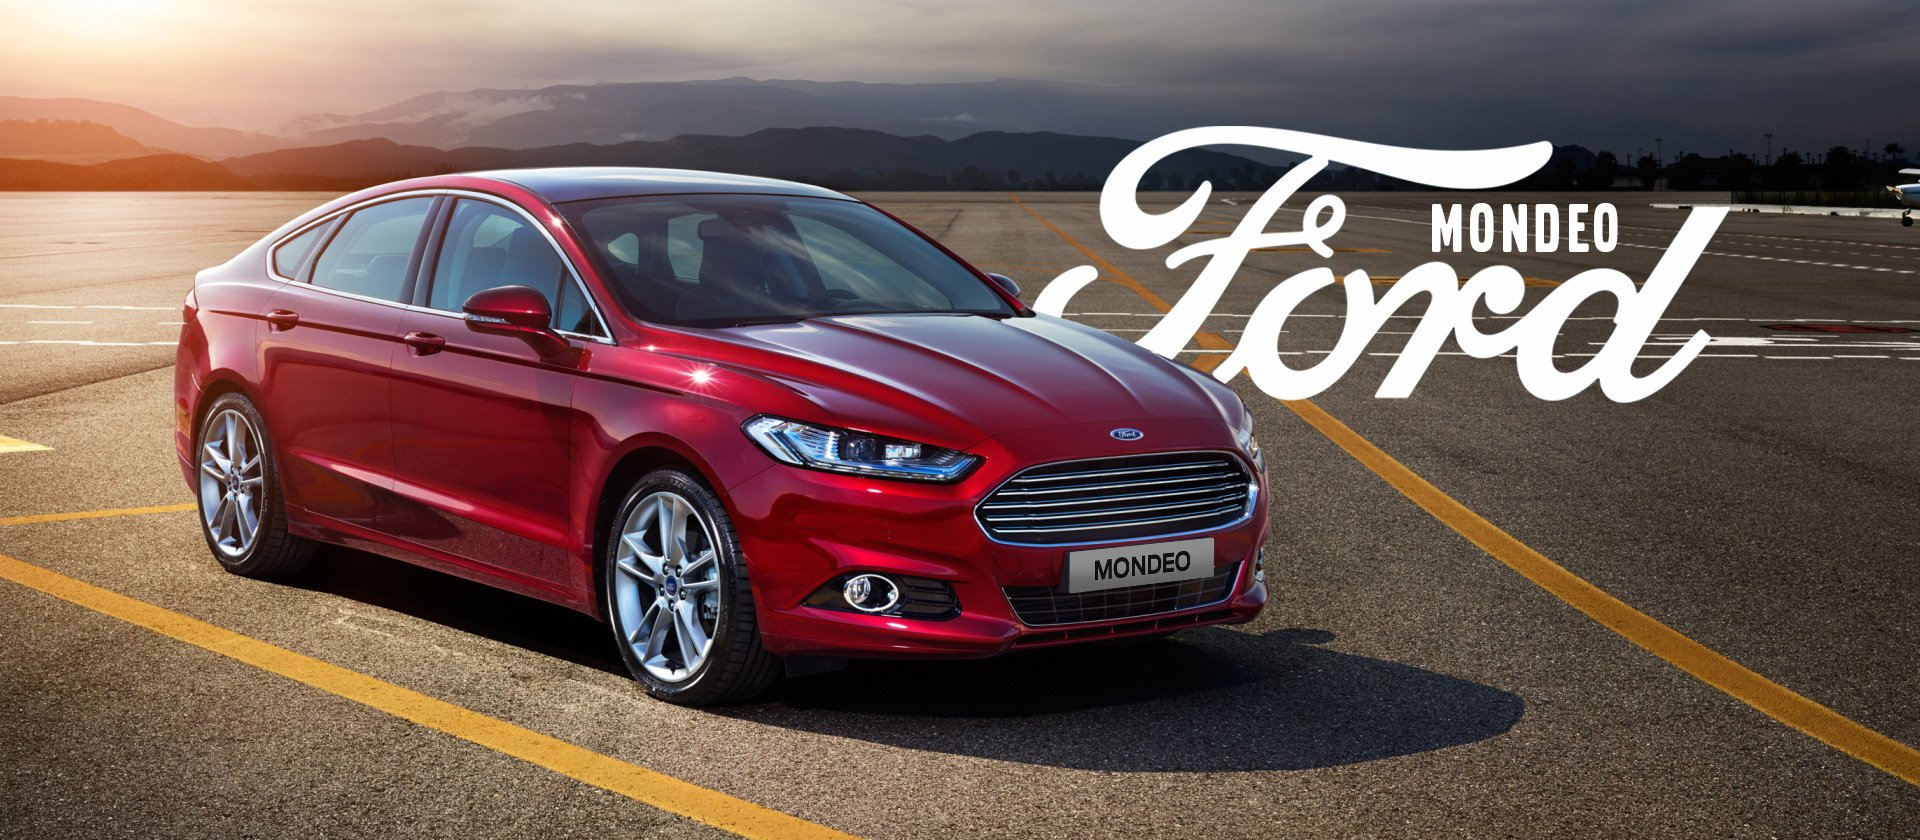 mondeo-forsidumynd-fordis-1920x840-20181004